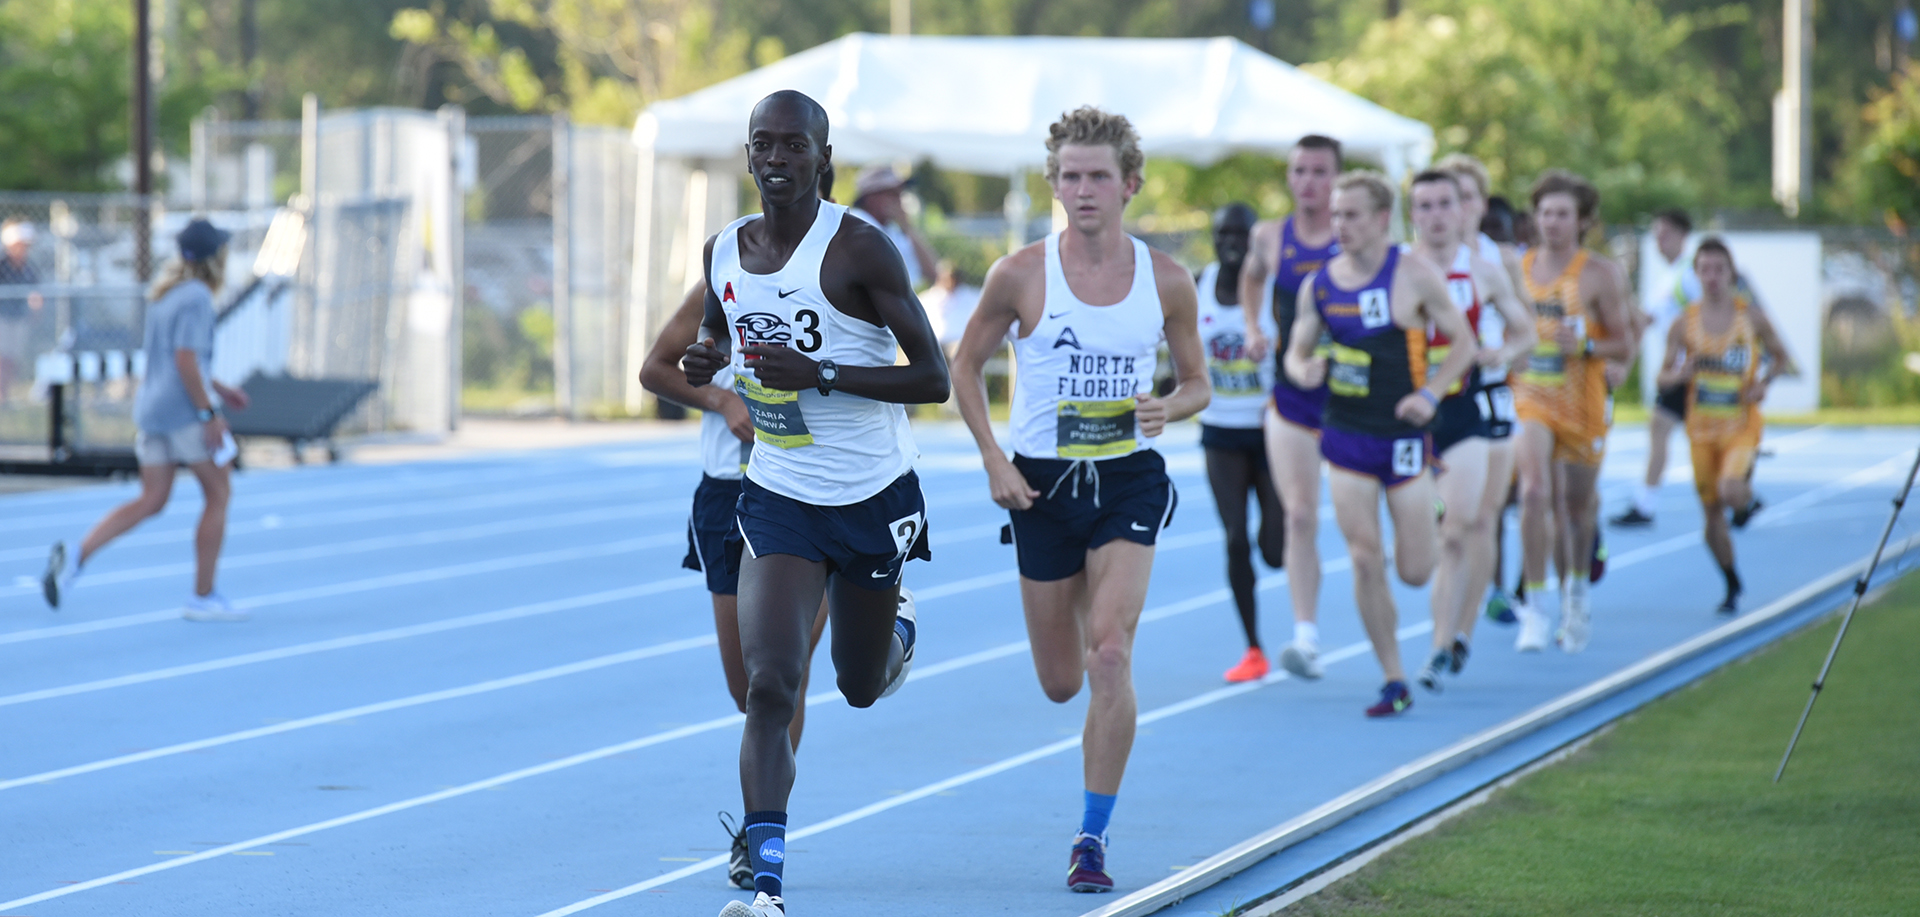 Azaria Kirwa shattered his previous best with his impressive 29:05.57 clocking at the Raleigh Relays on Friday.